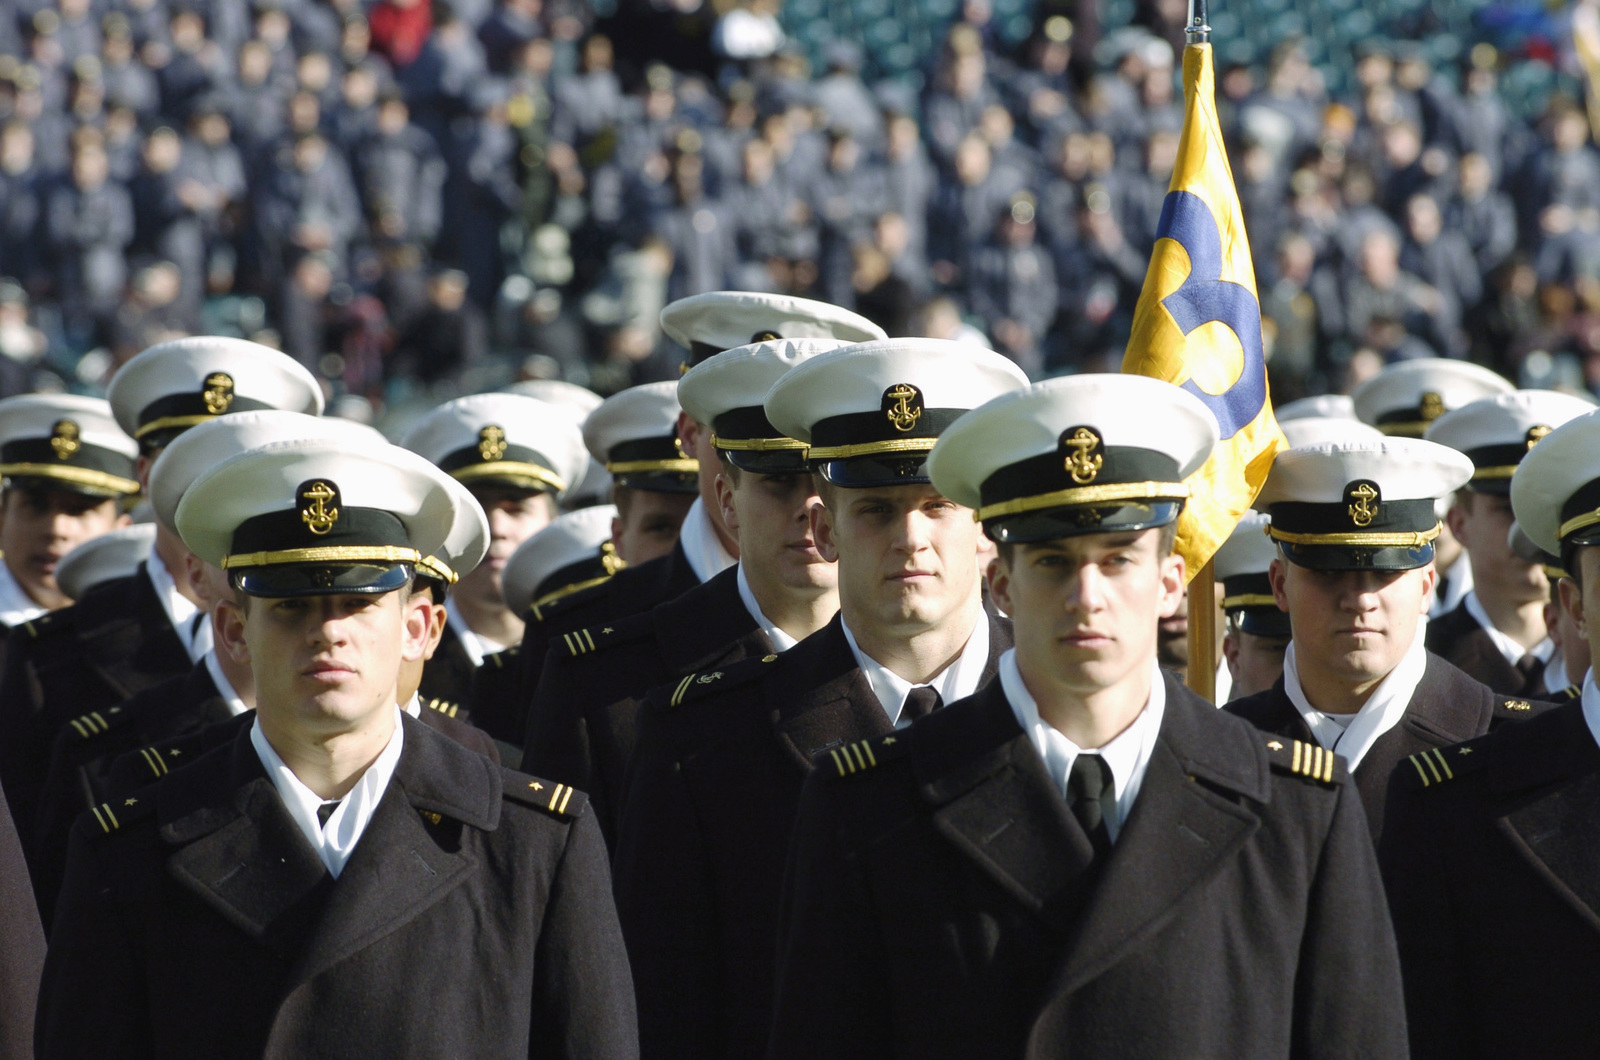 sneakers for cheap a19b9 b7475 US Naval Academy (USNA) Midshipmen (MIDN) march onto the ...